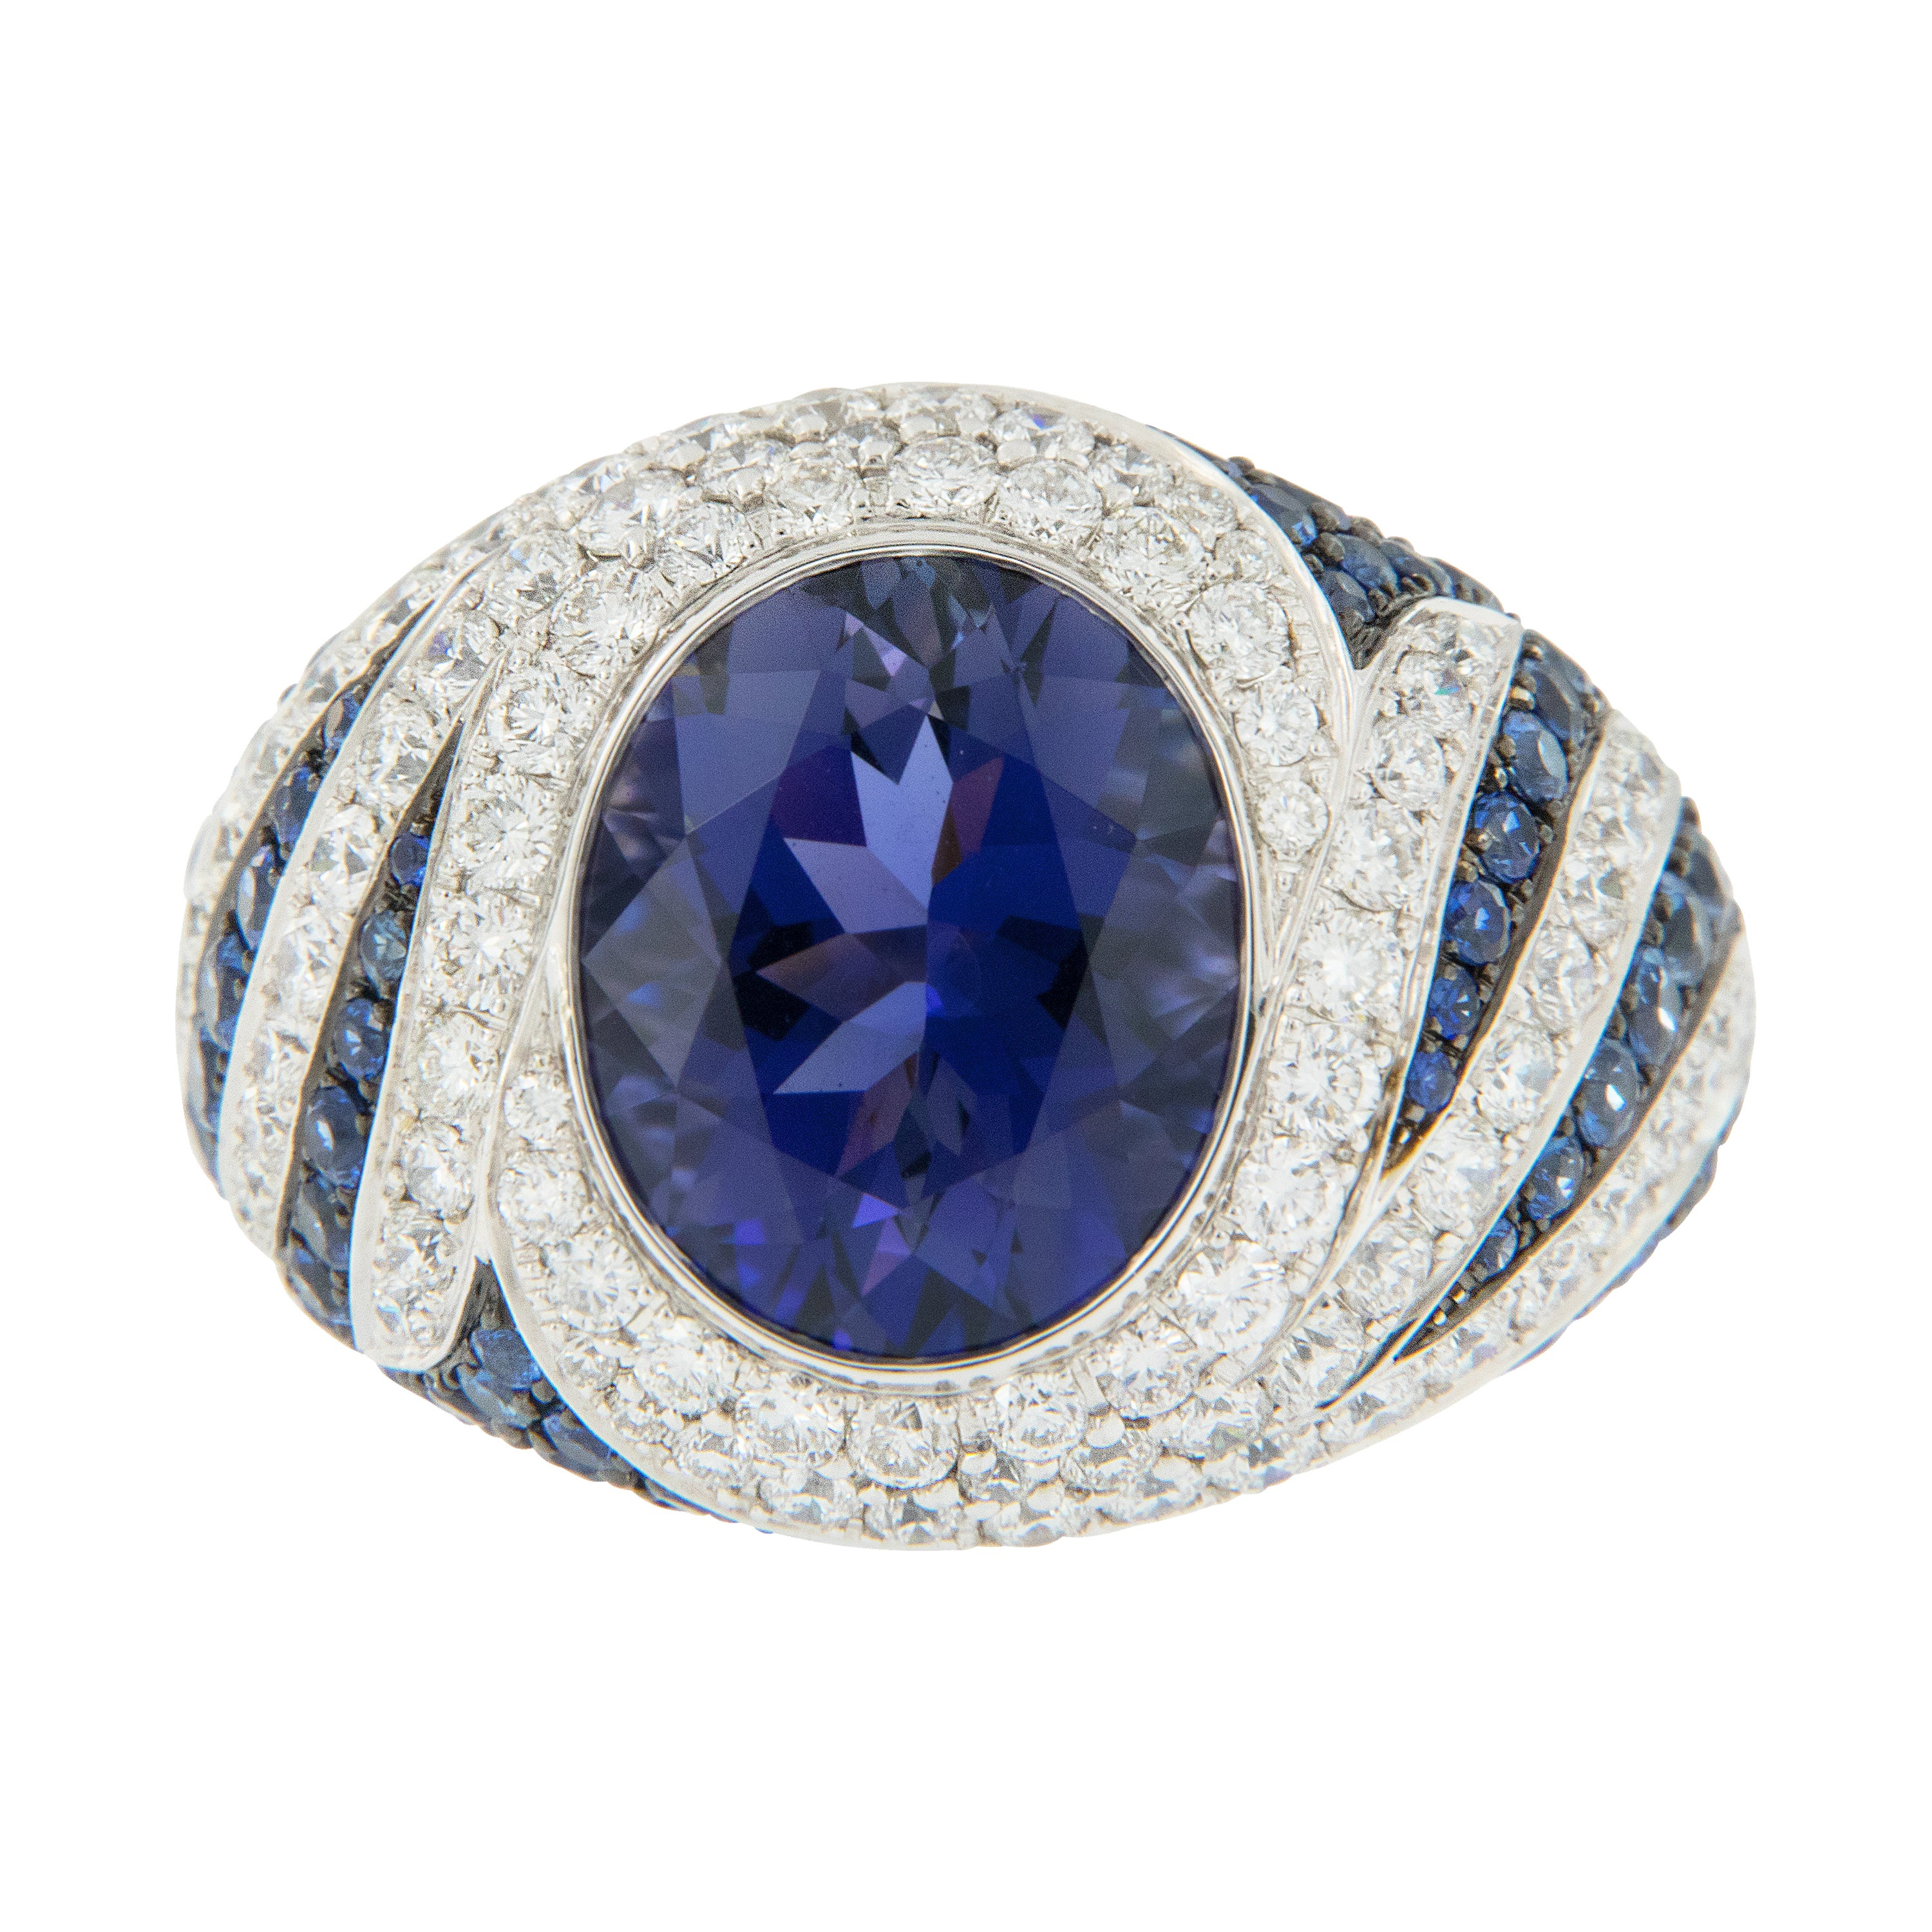 18 Karat White Gold Iolite Sapphire and Diamond Cocktail Ring